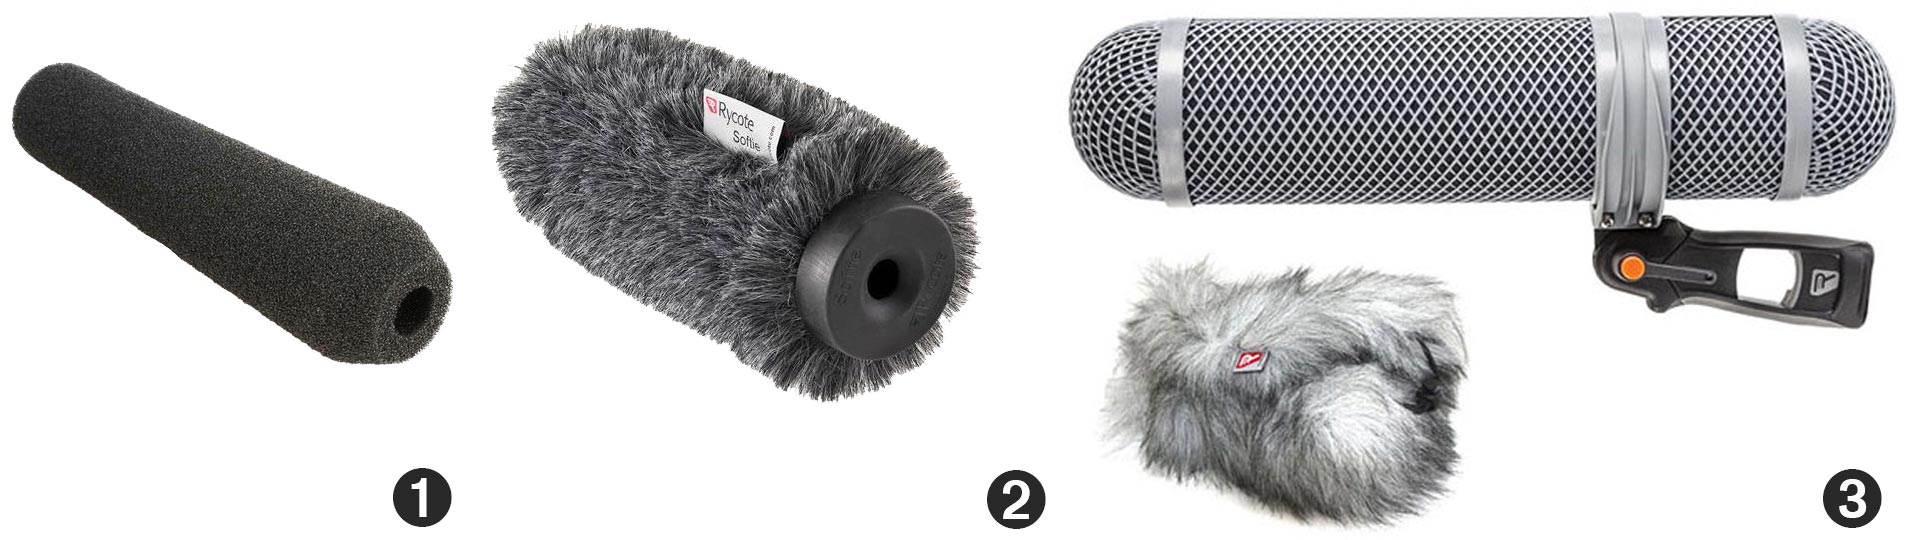 1. Foam Windshield (image); 2. Rycote Softie (image); Rycote Modular Windshield (image)